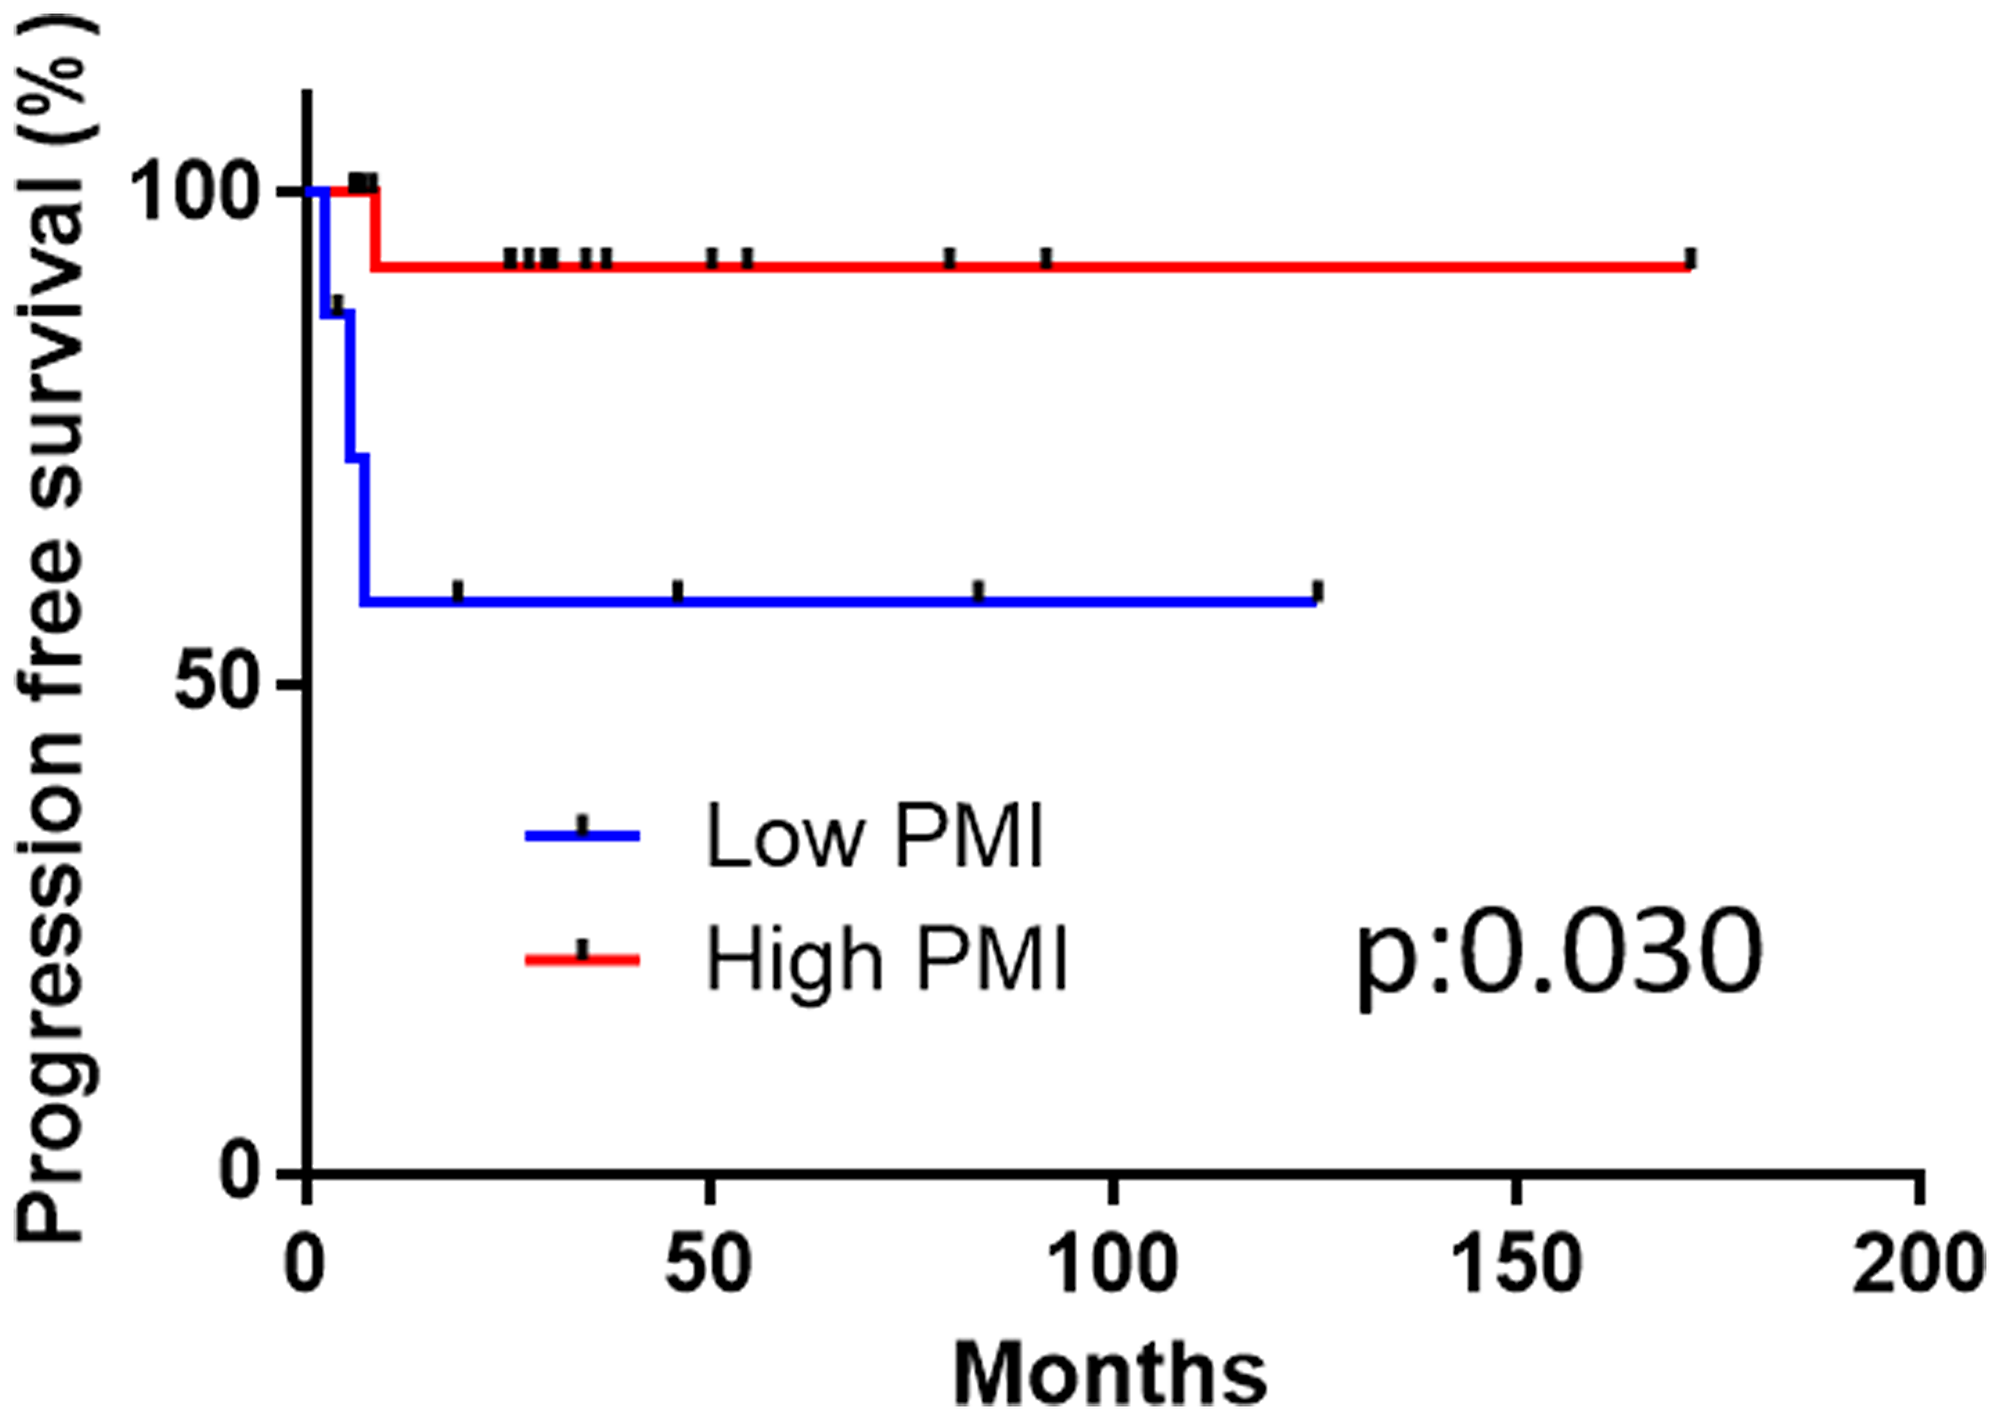 The disease-specific survival in the high and low psoas muscle index (PMI) groups.